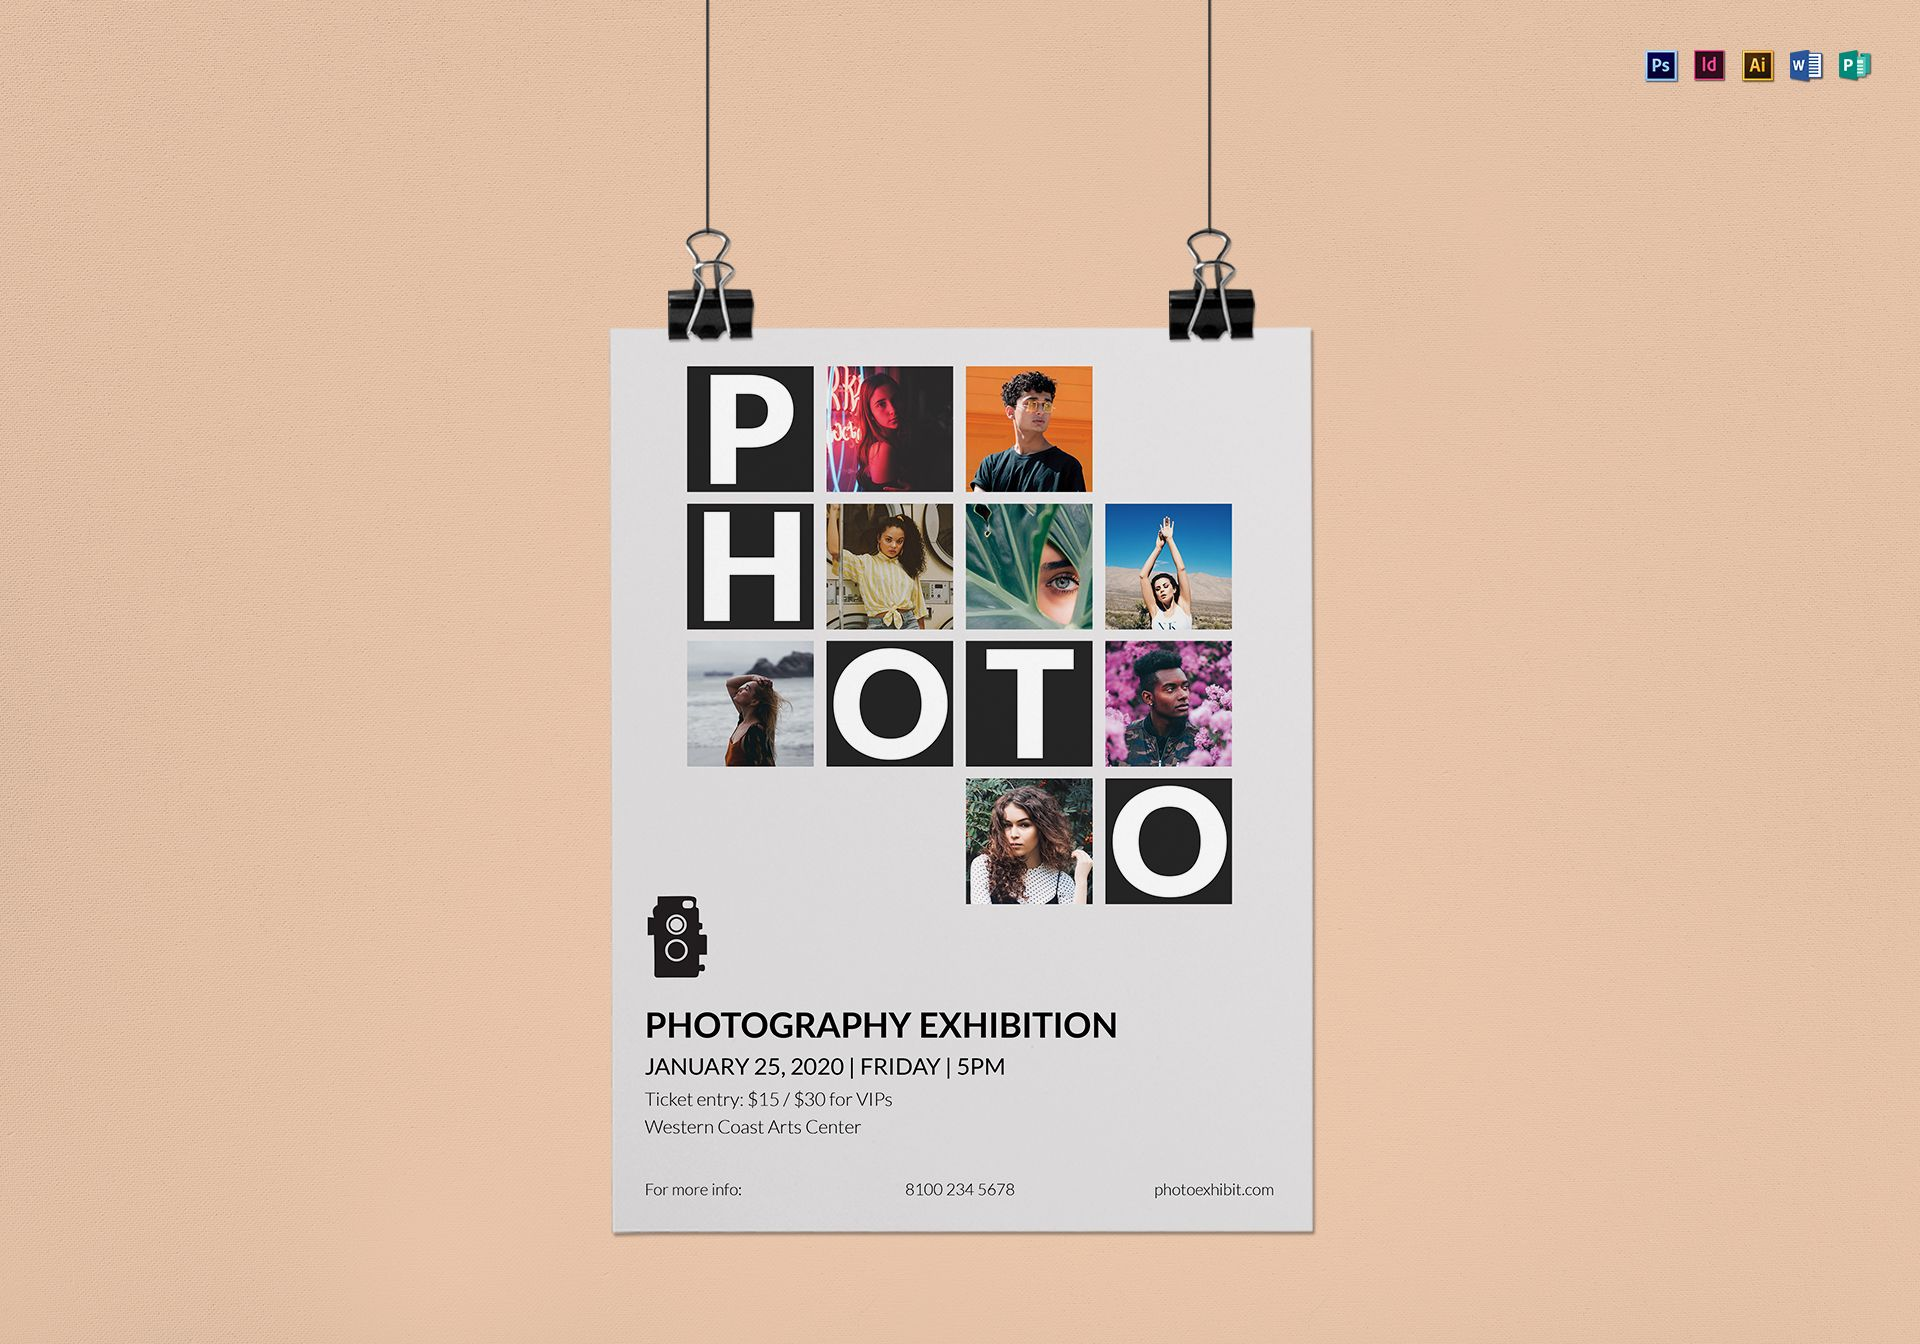 Photography Exhibition Photography Exhibition Flyer Template